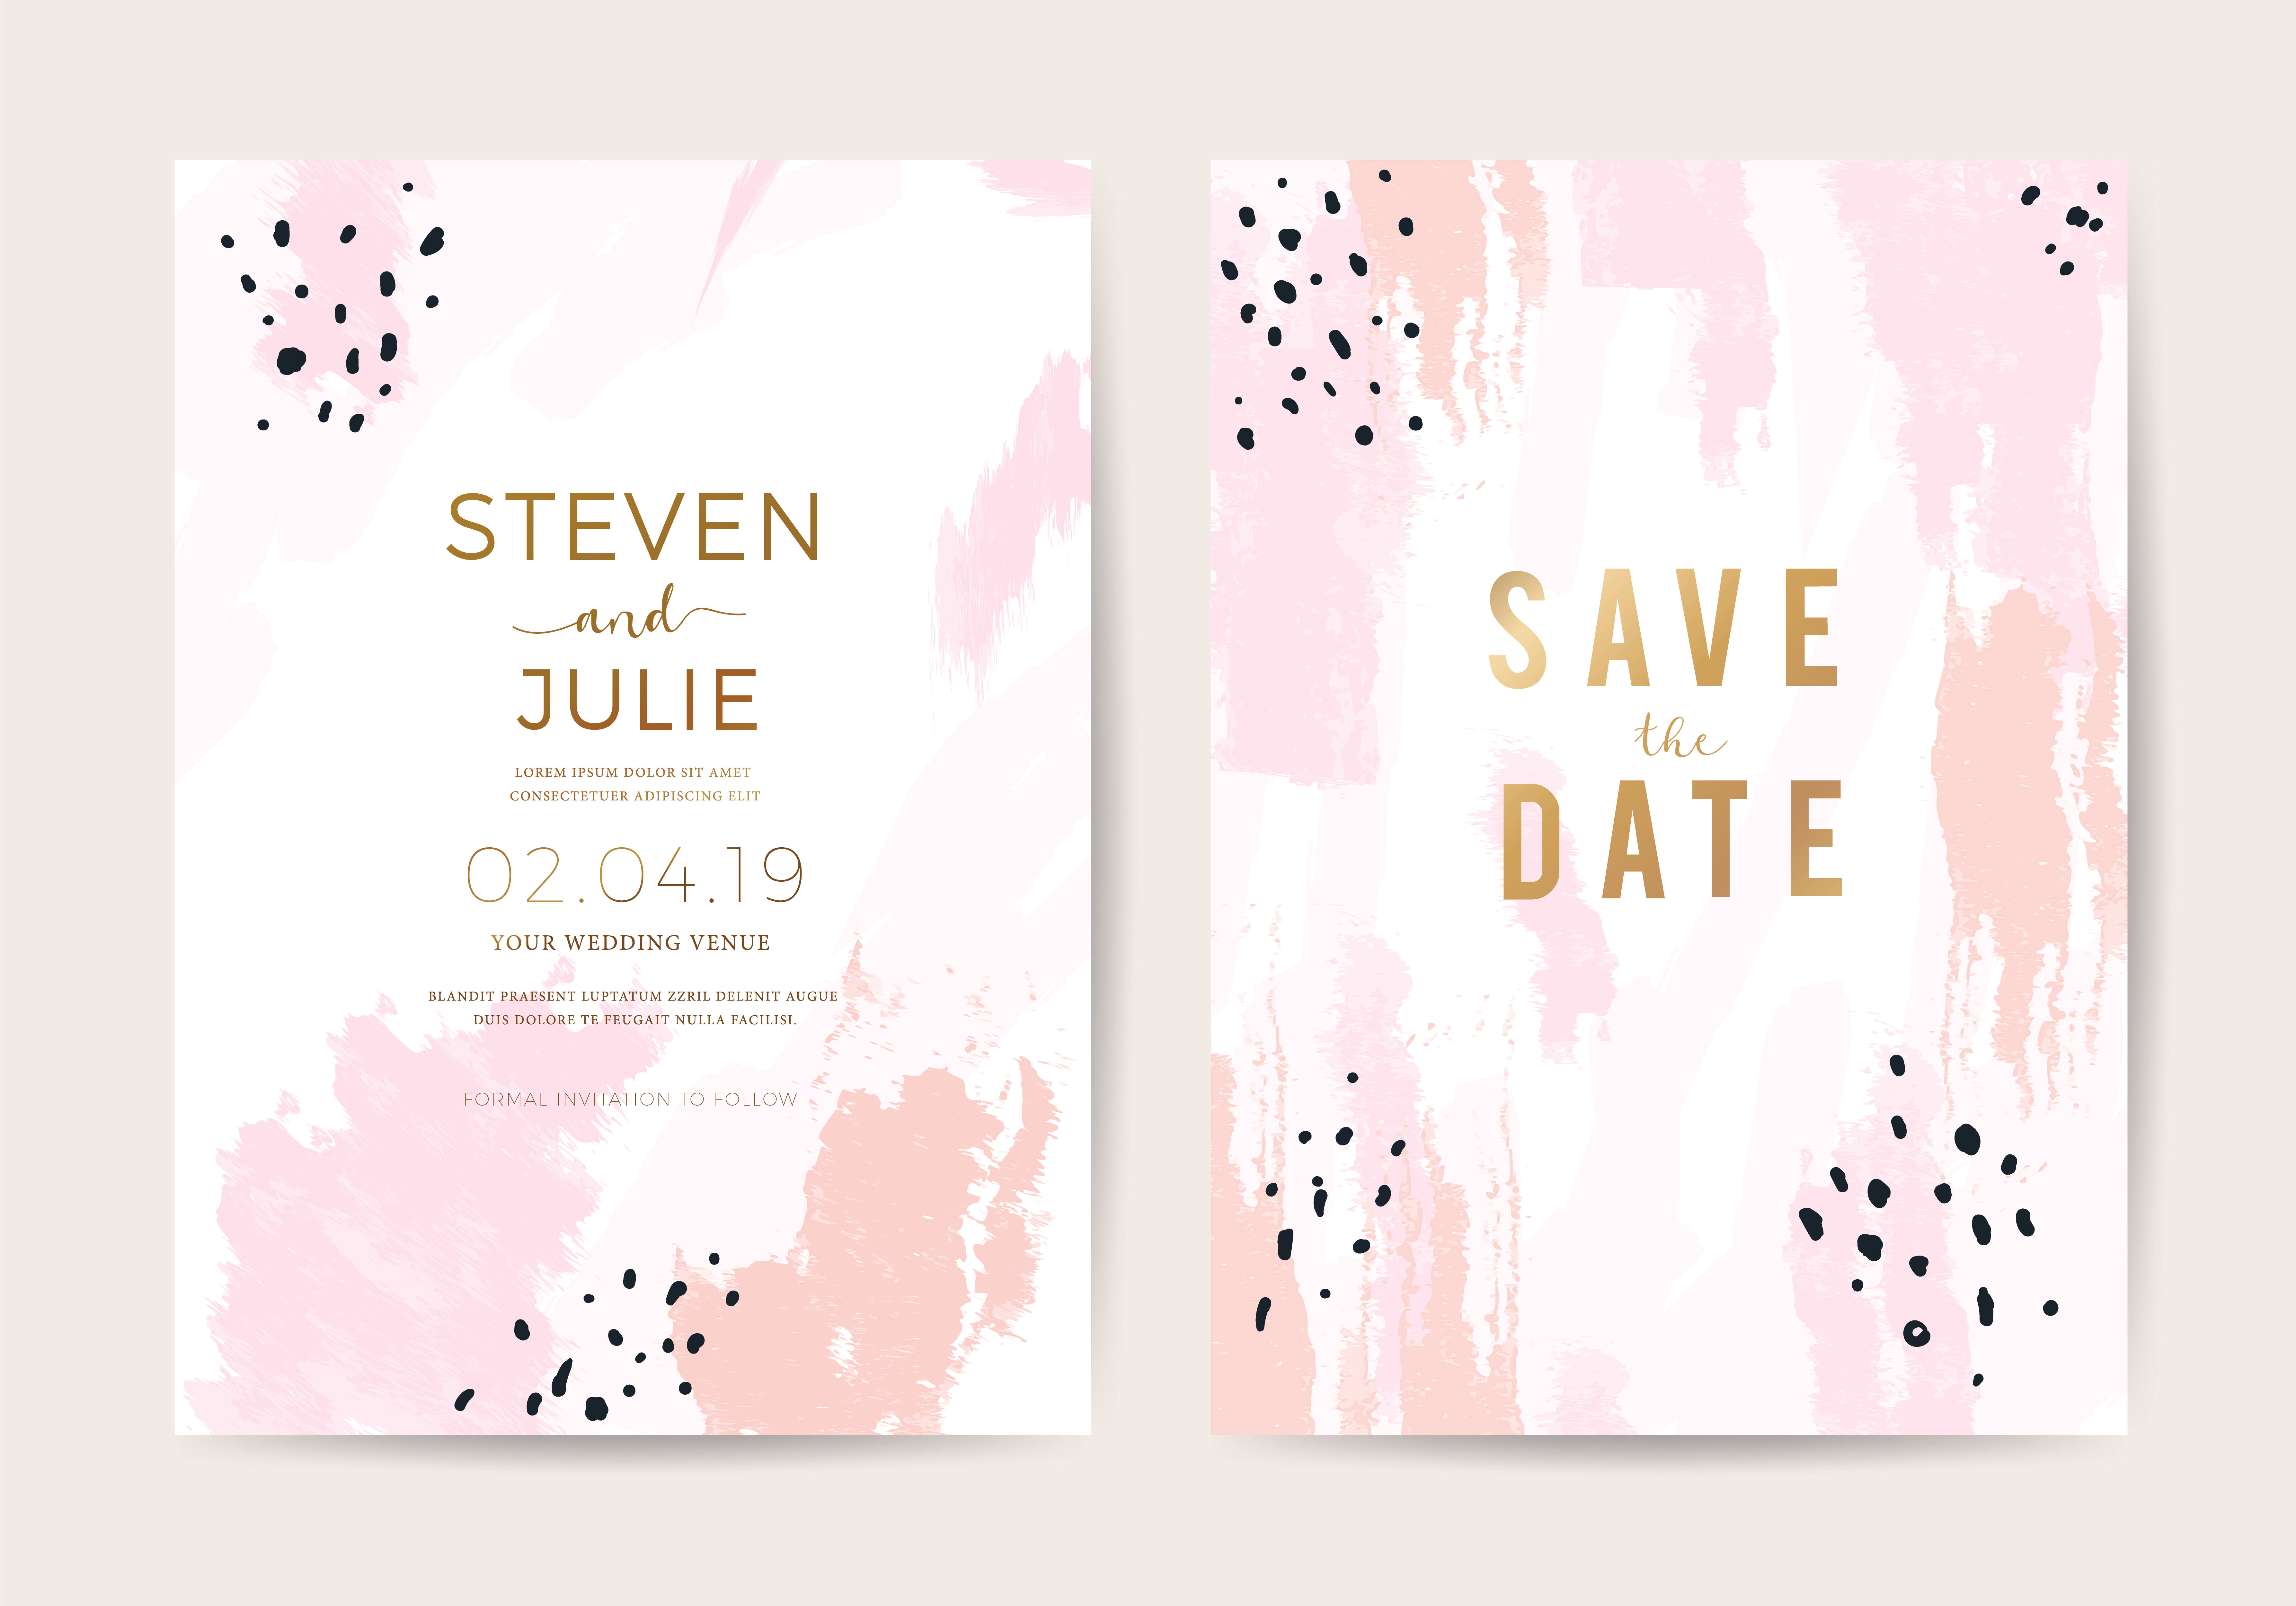 Minimal wedding invitation card design template with pink and rose gold  brush texture - Download Free Vectors, Clipart Graphics & Vector Art